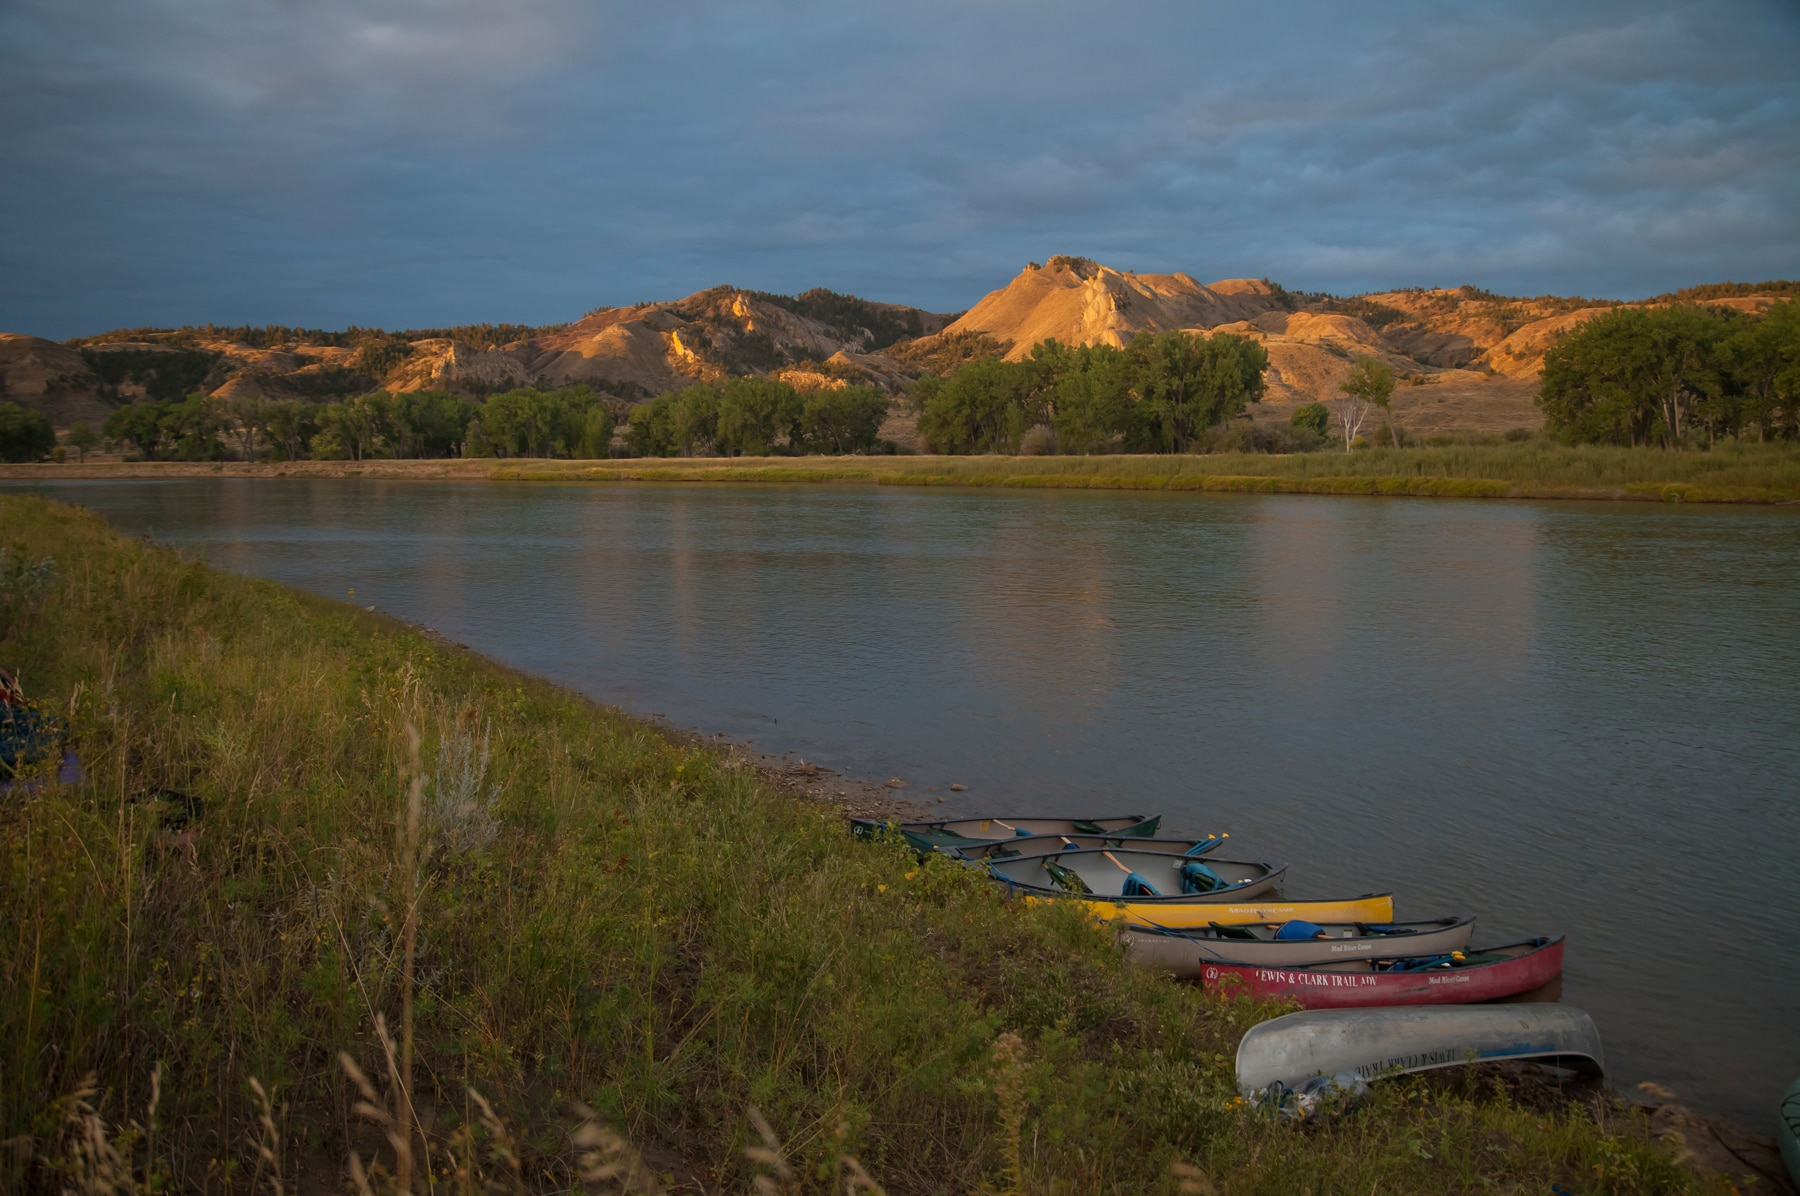 Canoes sitting on the bank of river (Dennis Lingohr/APR)